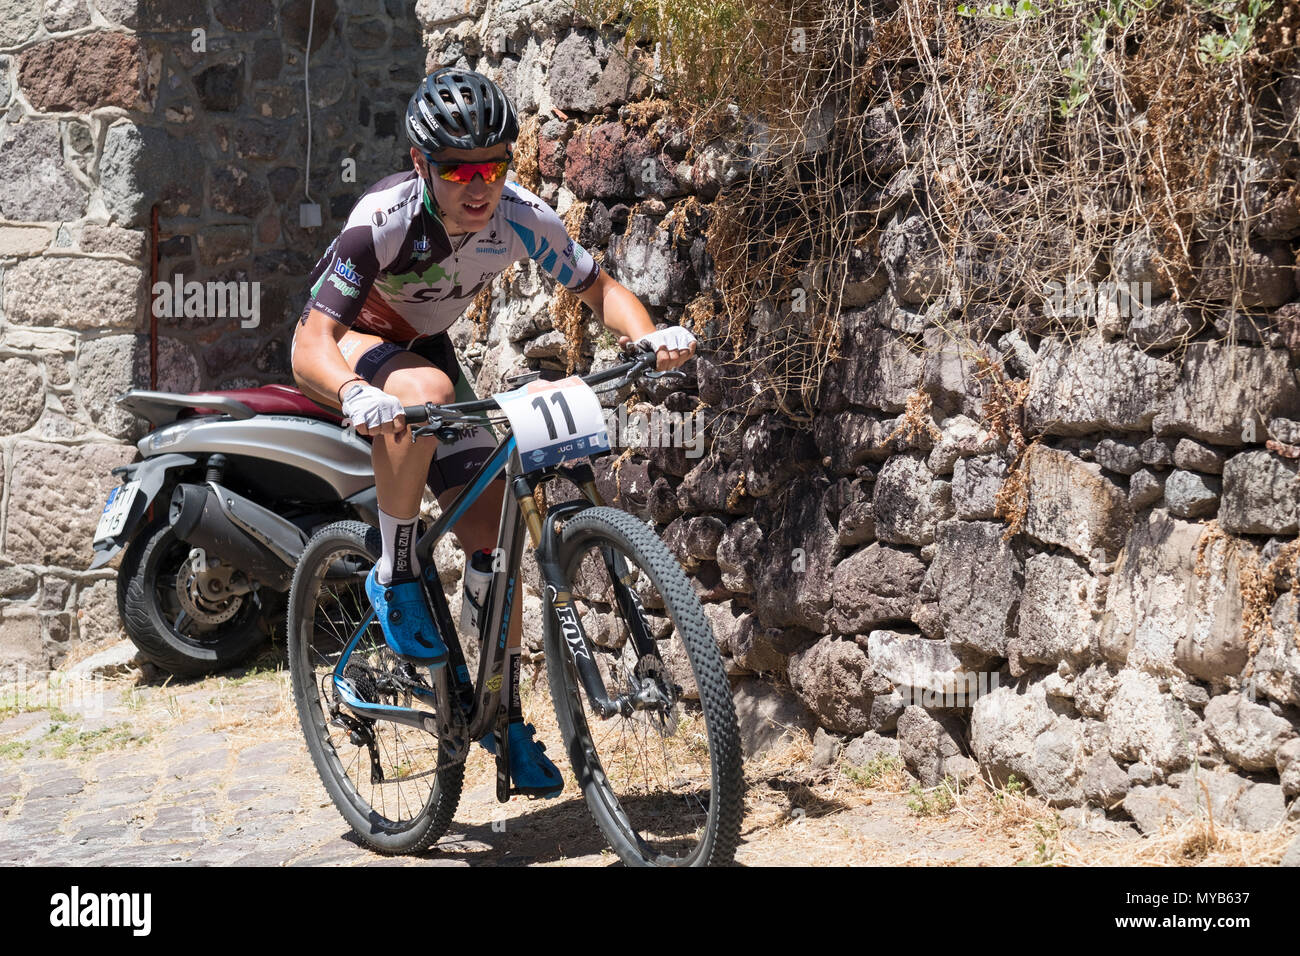 Female Dutch cyclist competes in an international mountain bike race in the Greek village of Molyvos on the island of Lesvos - Stock Image